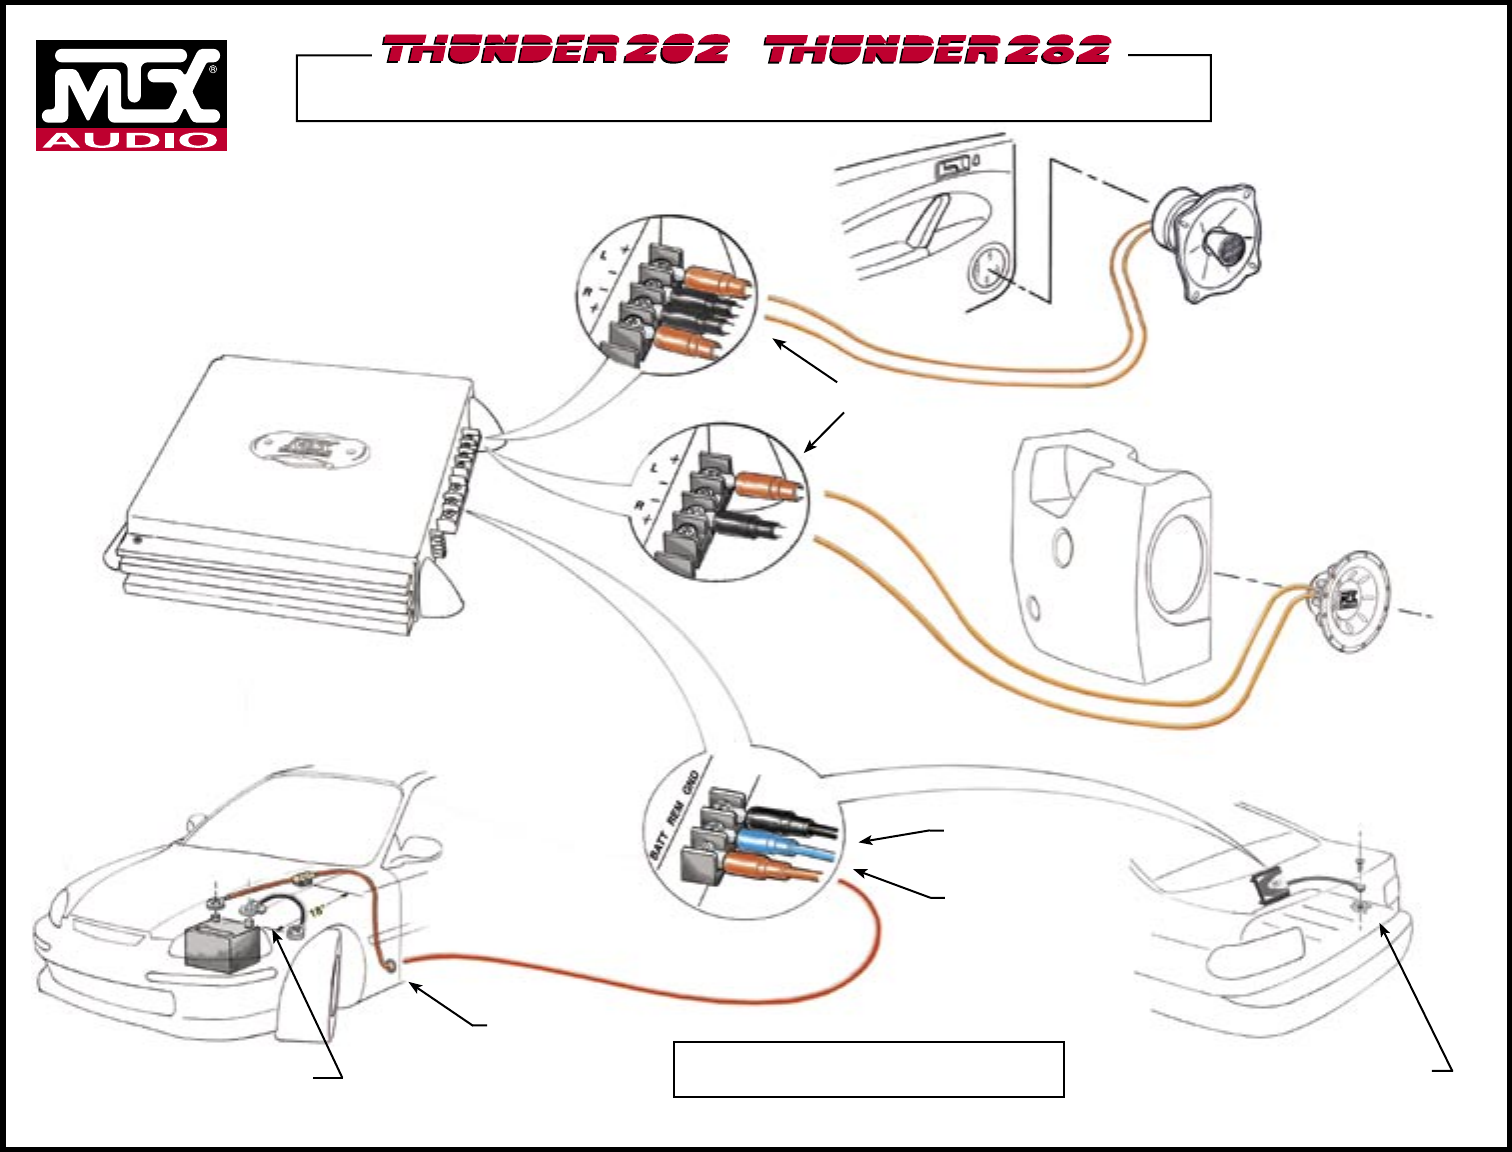 Mtx Tna251 Wiring Diagram Images Gallery